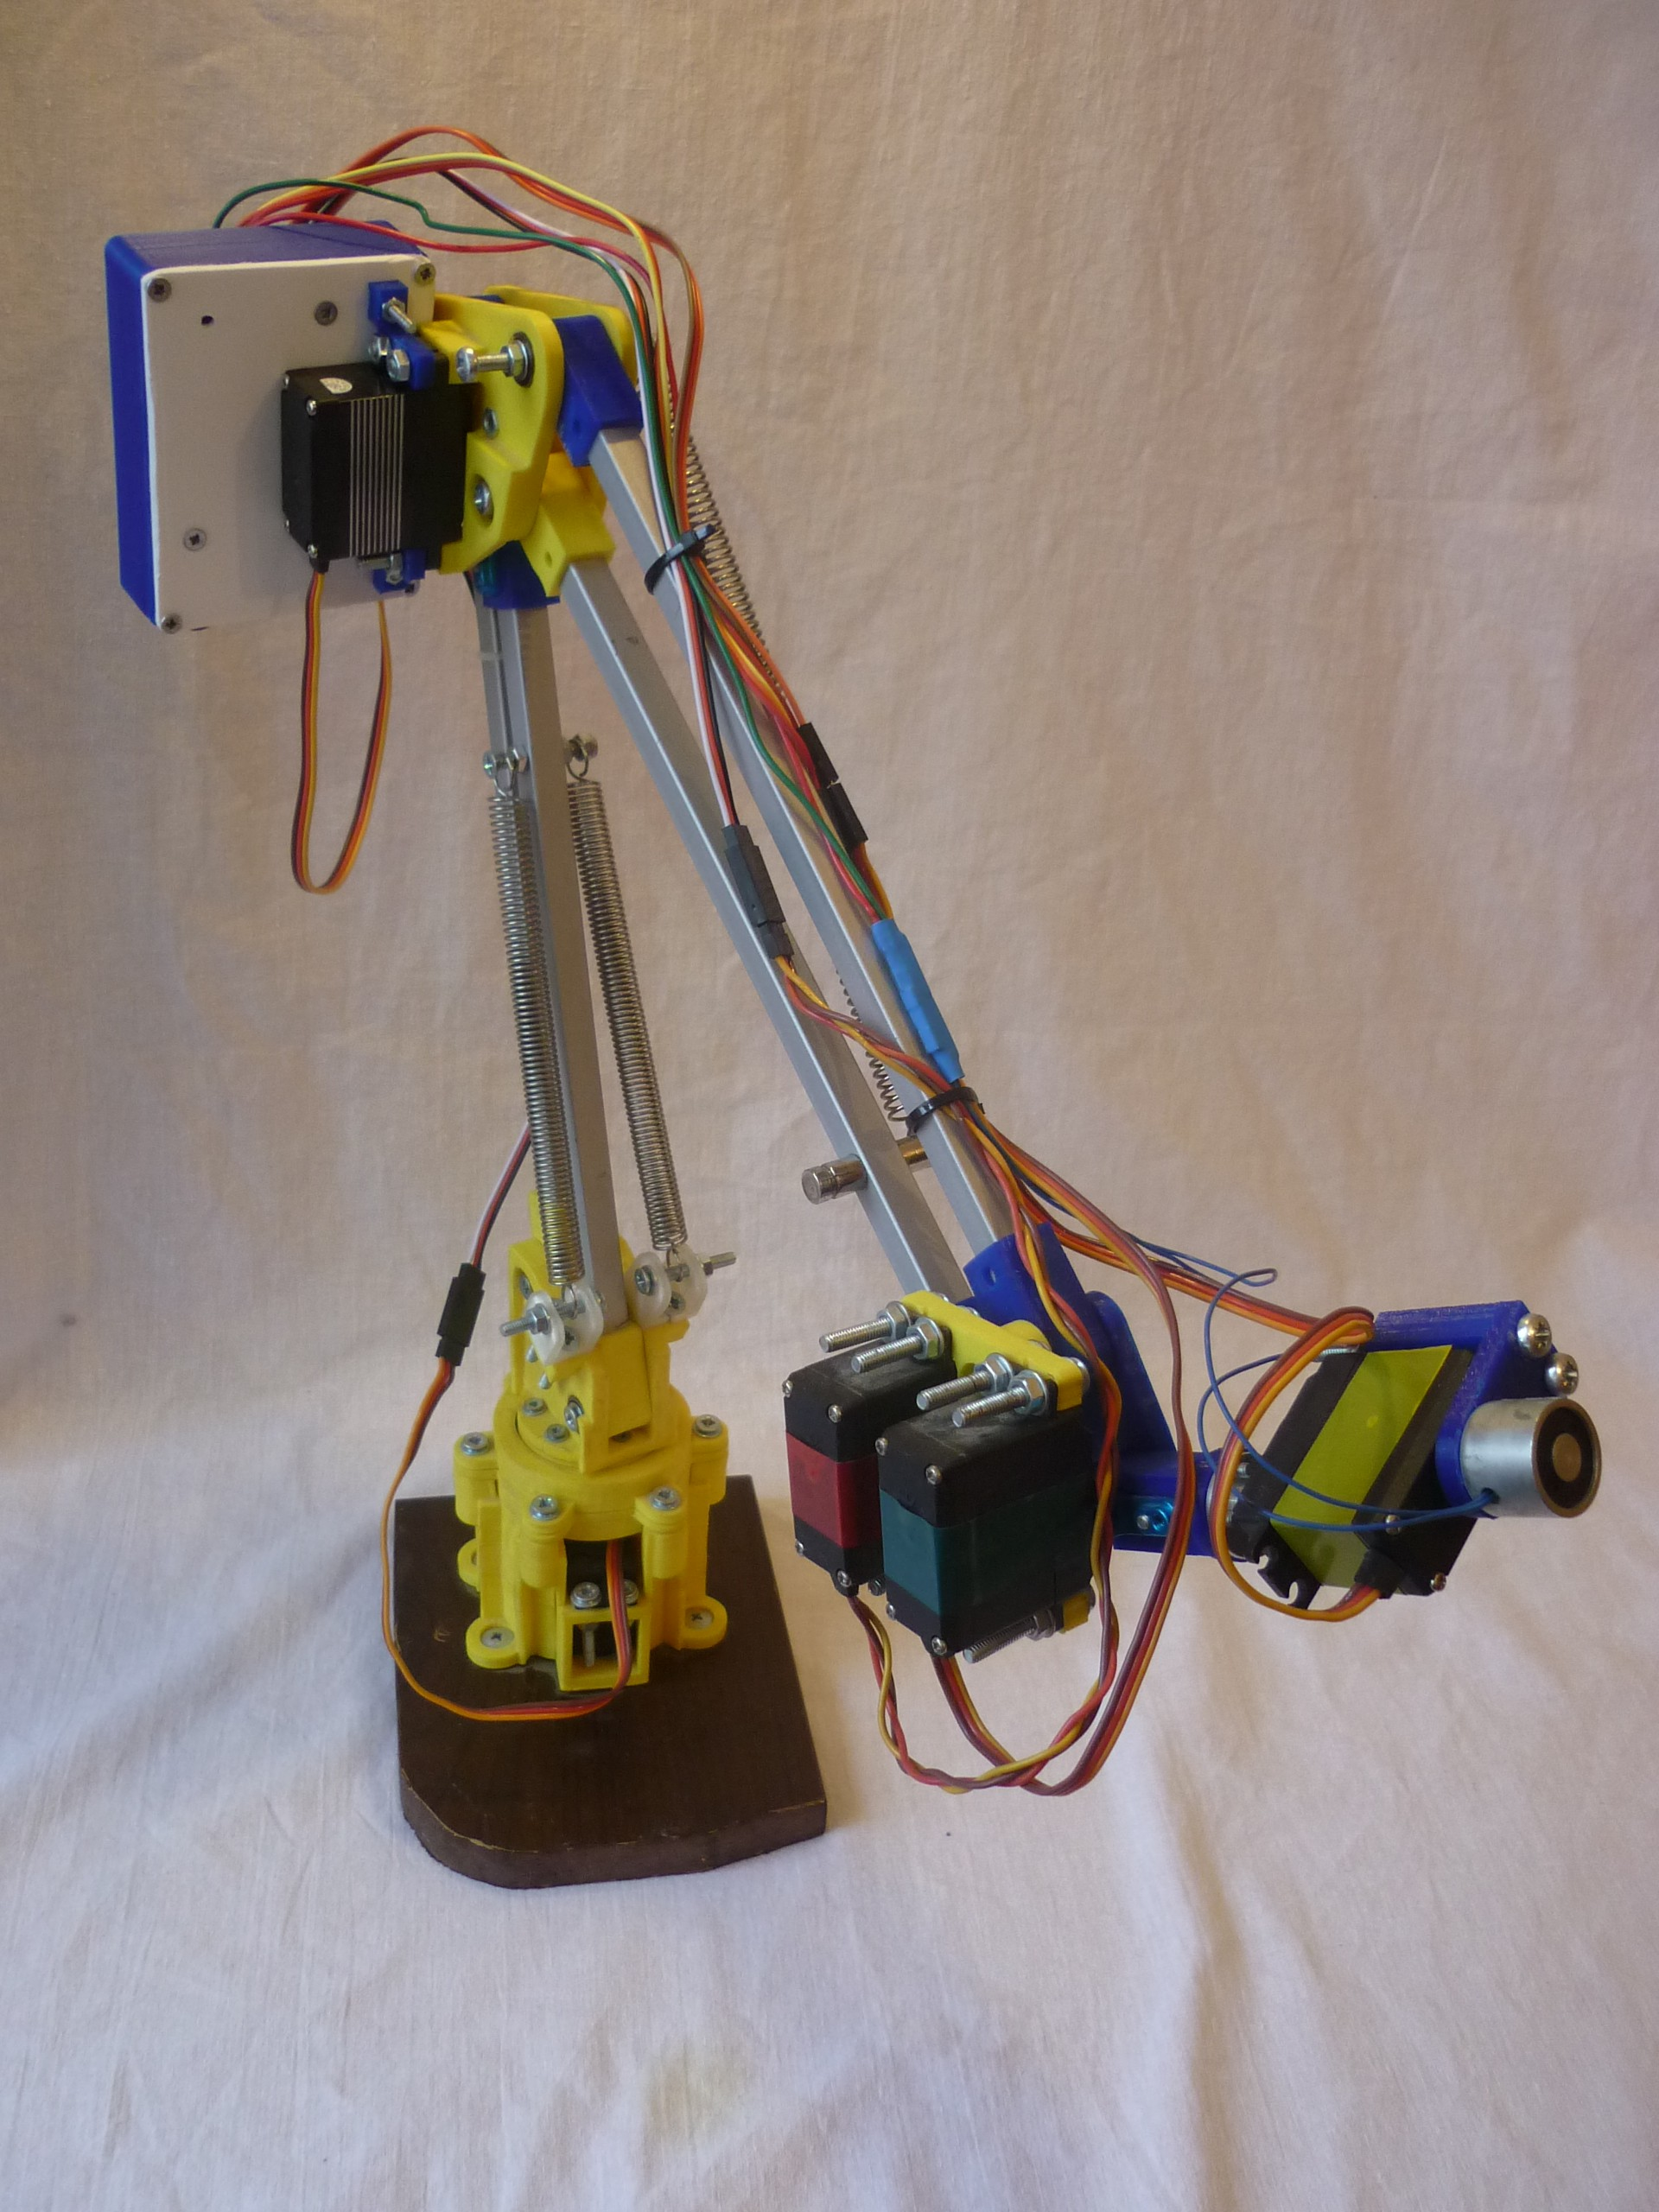 Tertiarm low cost d printed robot arm based on ikea